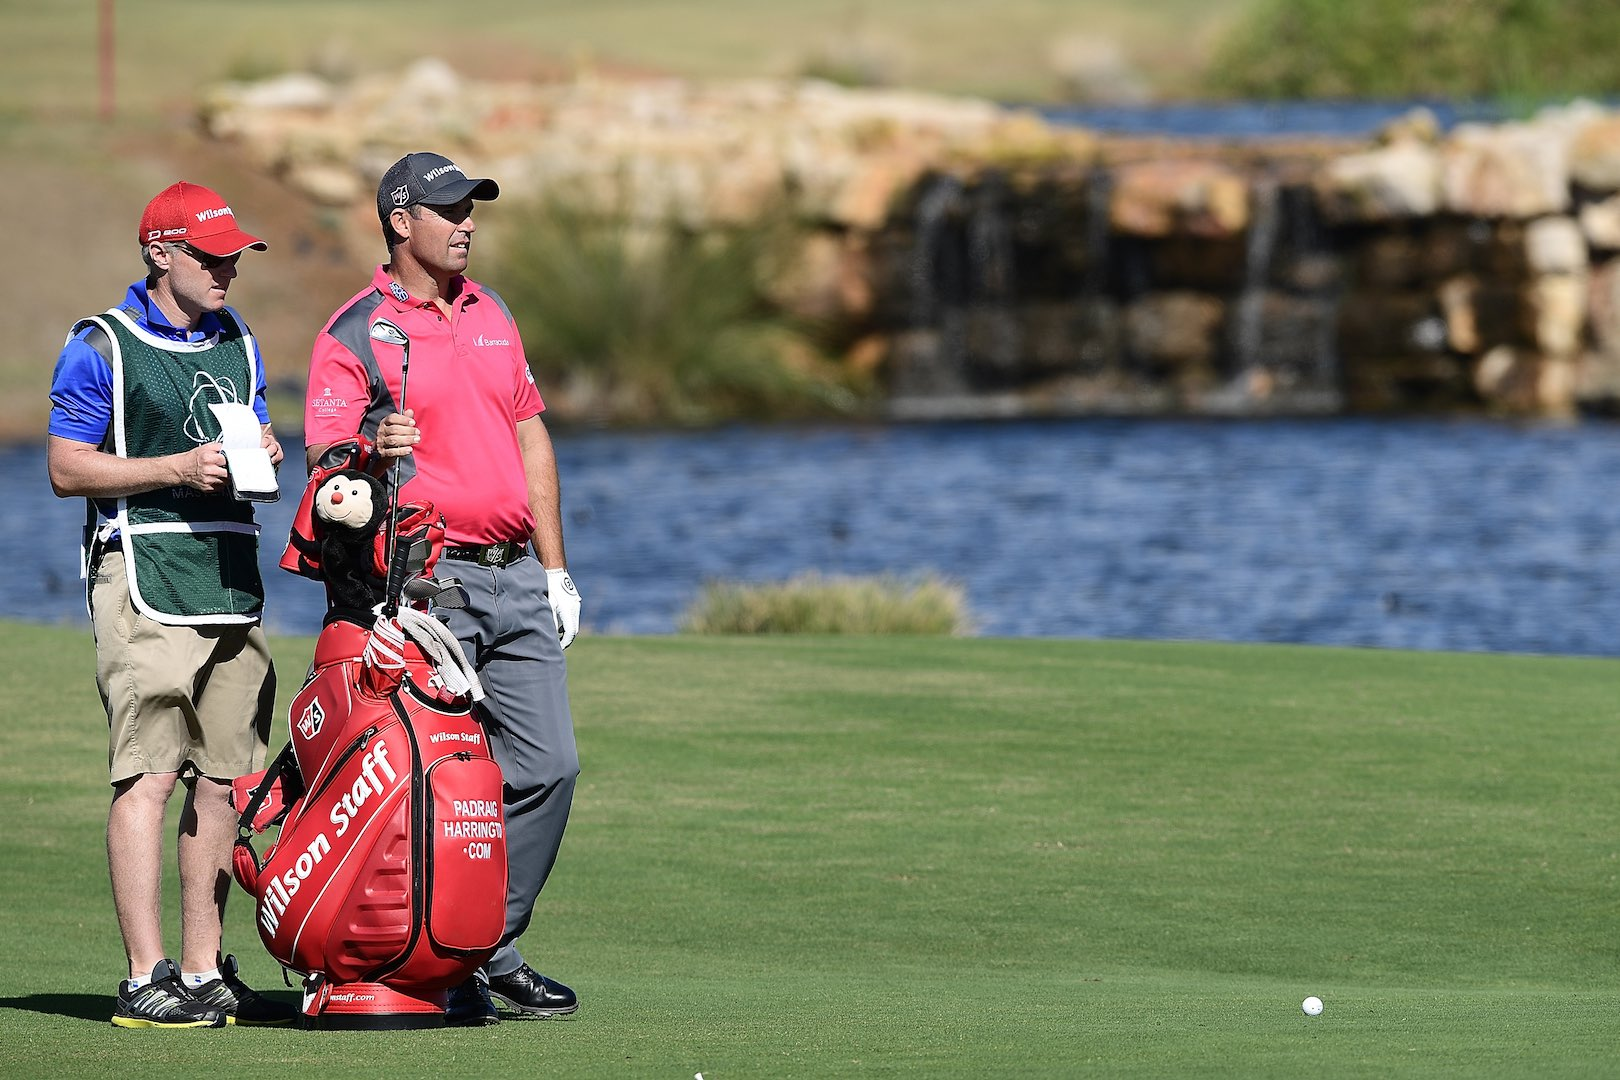 Padraig Harrington and Justin Thomas Winning What's In the Bag's?